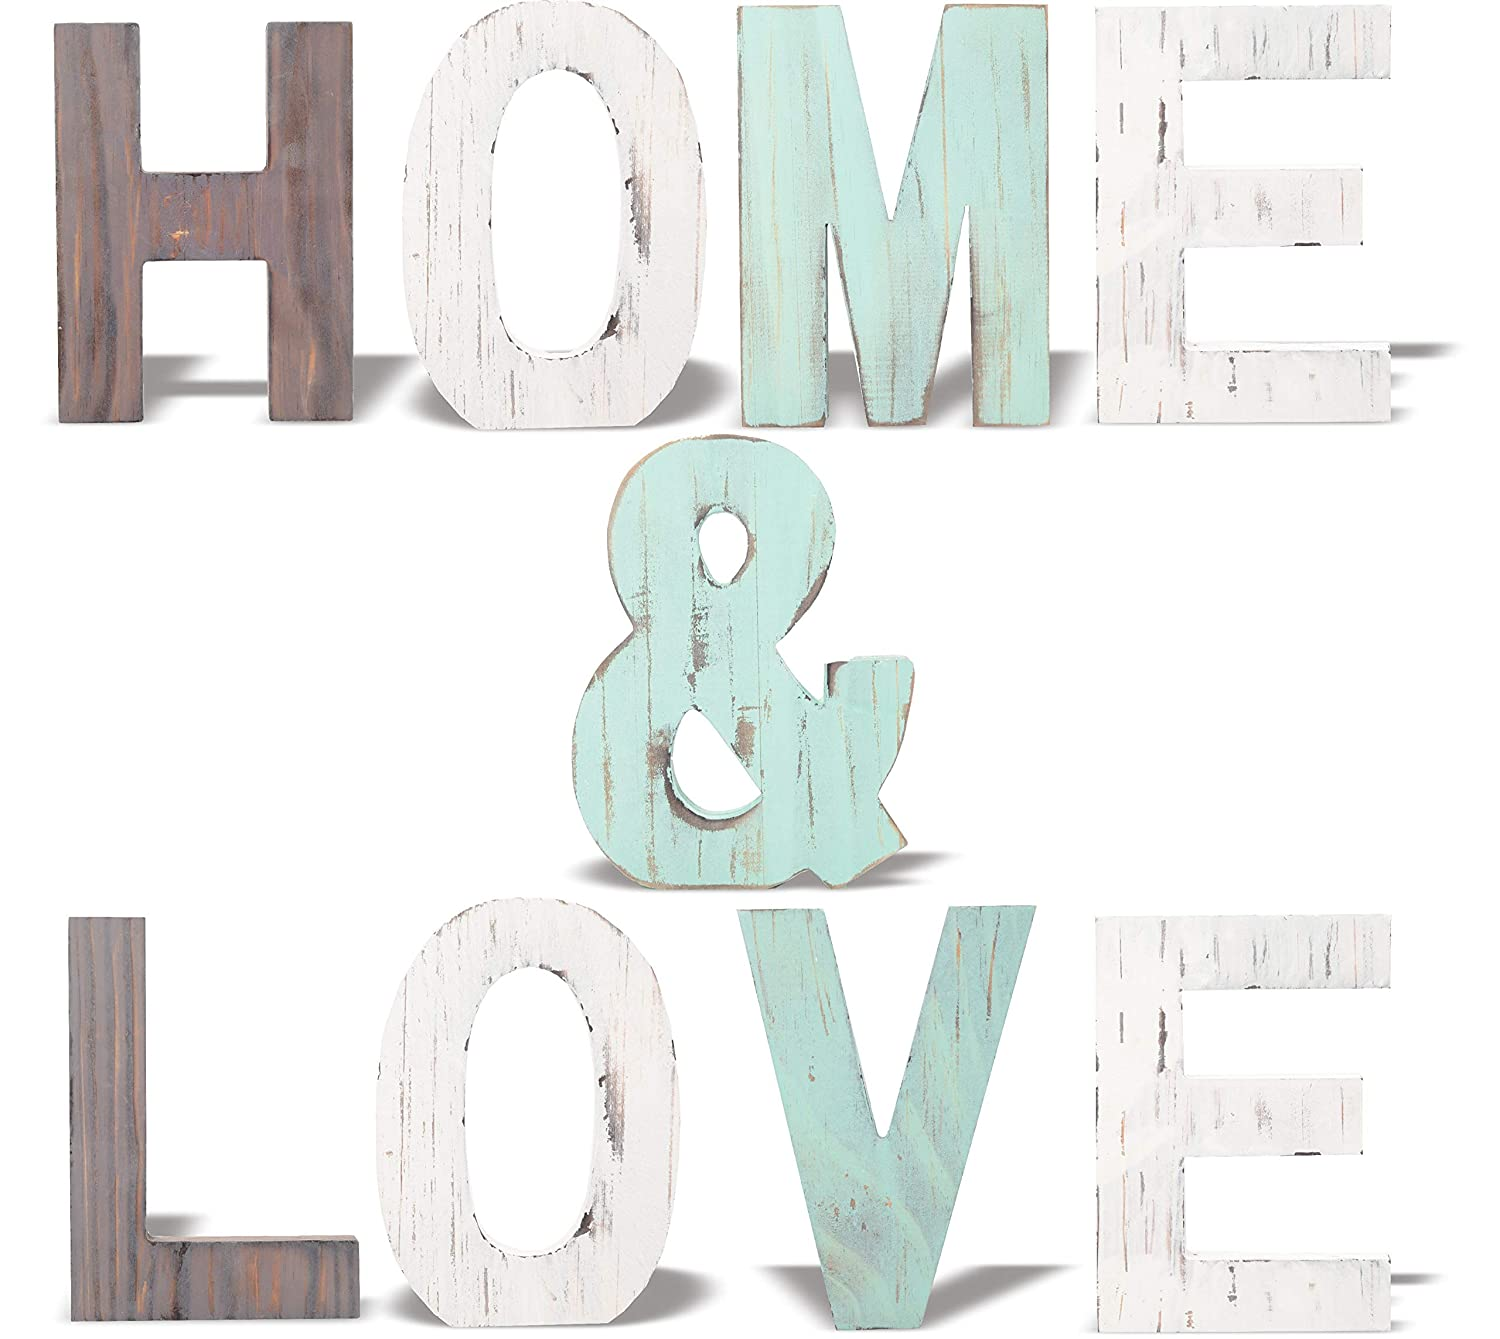 Rustic Wood Home & Love Signs Home Décor |Freestanding Wooden Letters Cutouts for Home Décor|Multi-Color Wooden Signs |Decorative Word Signs|Multicolor Table Decor Centerpiece| for Kitchen Shelf